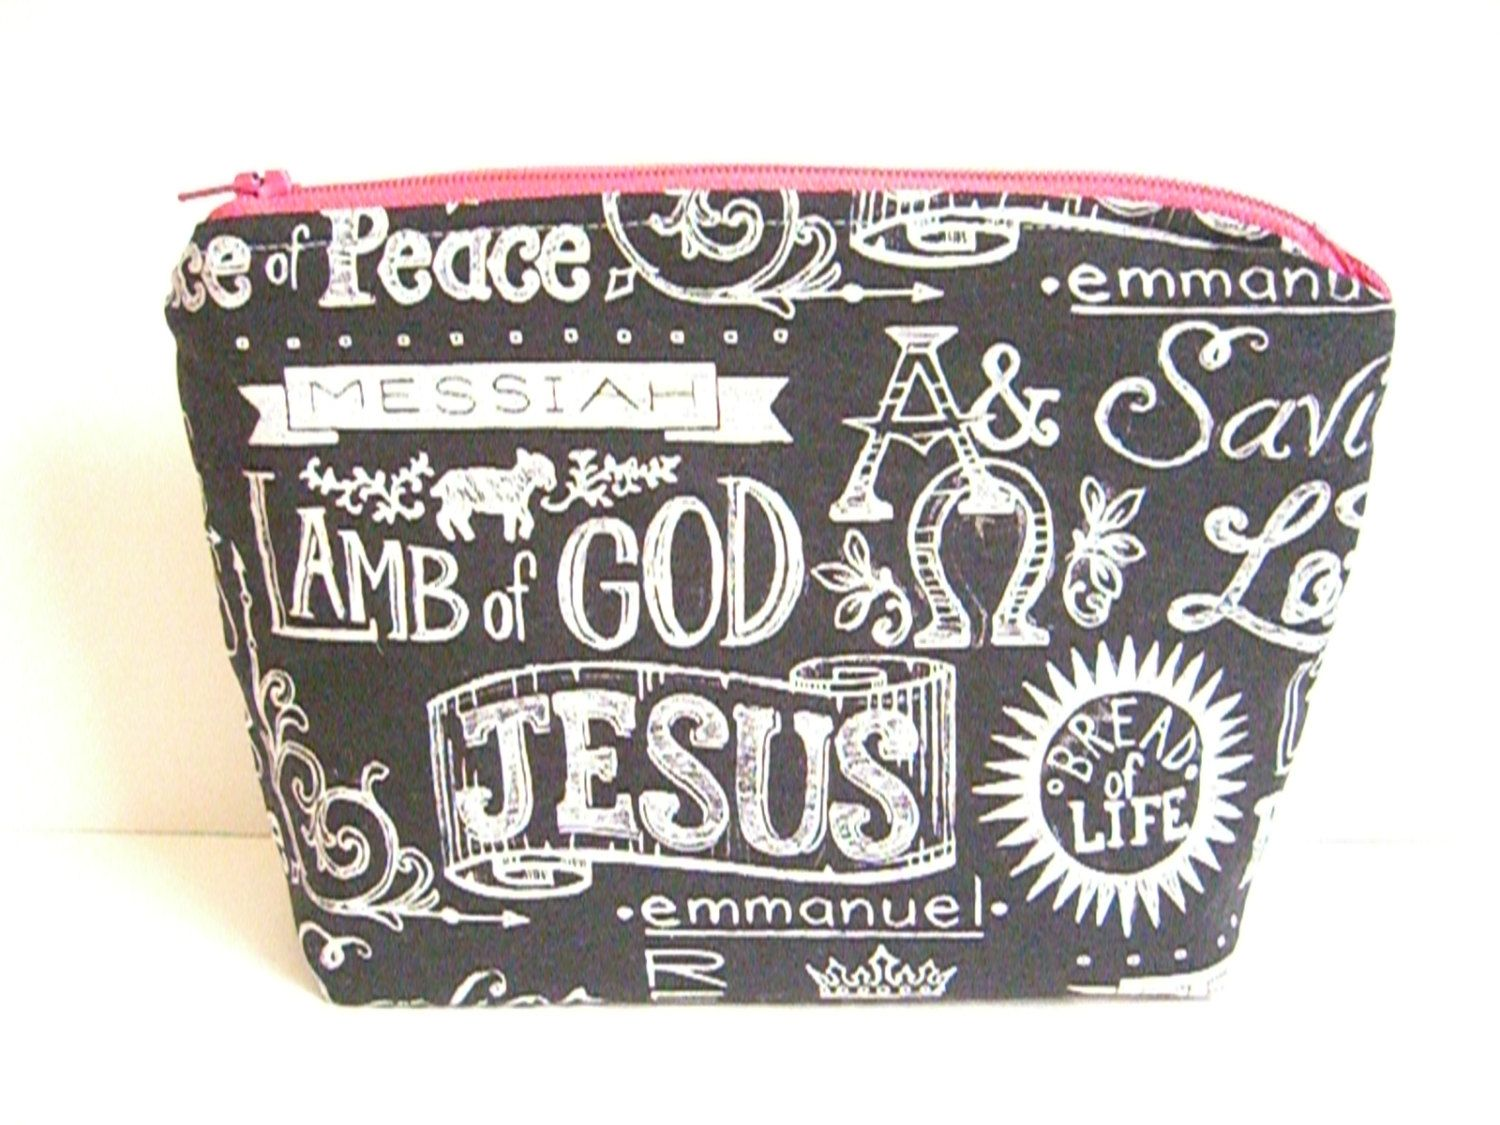 047609989e Scripture Zippered Pouch - Bible Verse Makeup Bag - Cosmetic Bag - Travel  Pouch - Pencil Case - Fabric Pouch - Handmade Pouch - Toiletry Bag by  SewSouthwest ...